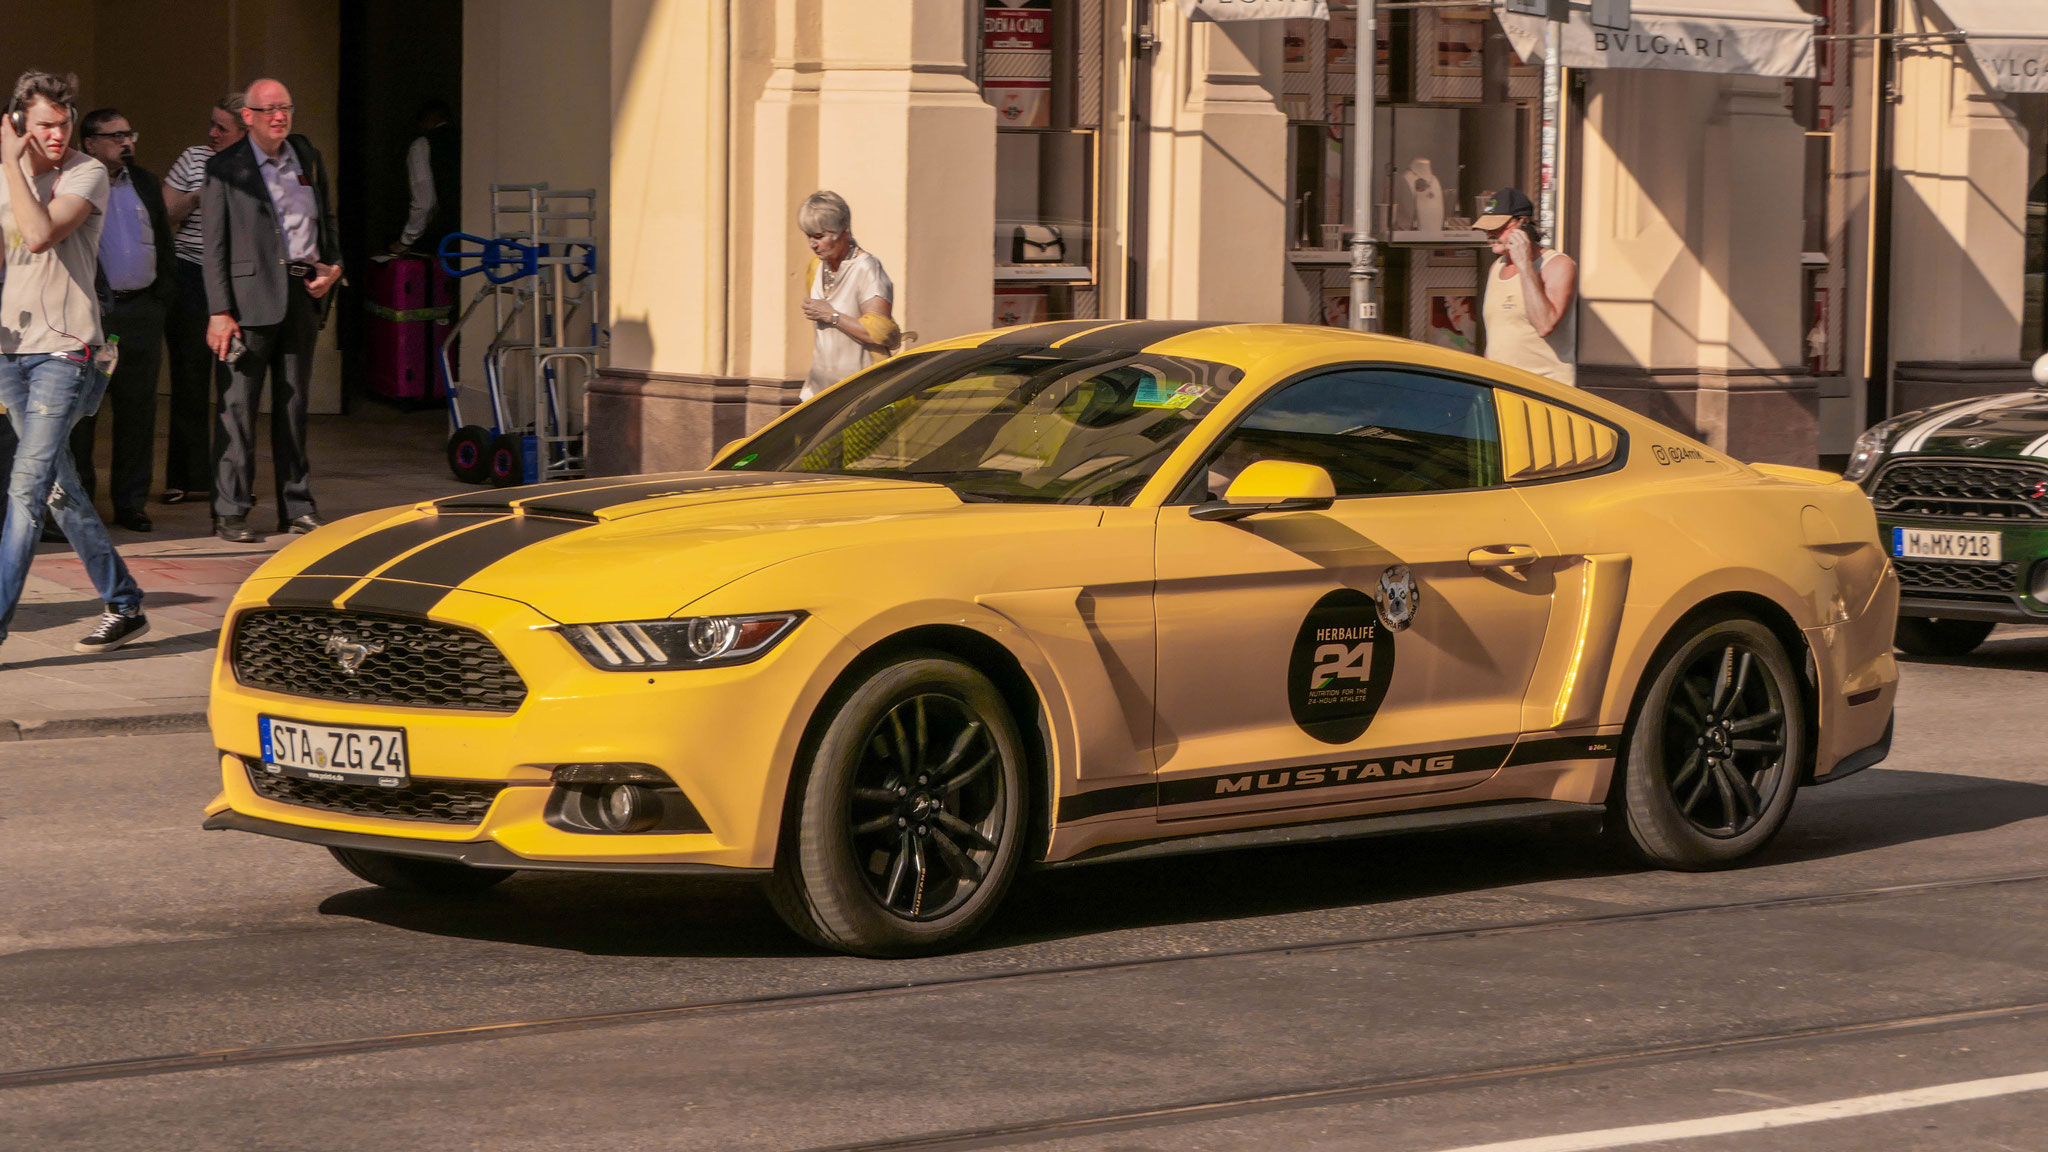 Ford Mustang GT - STA-ZG-24